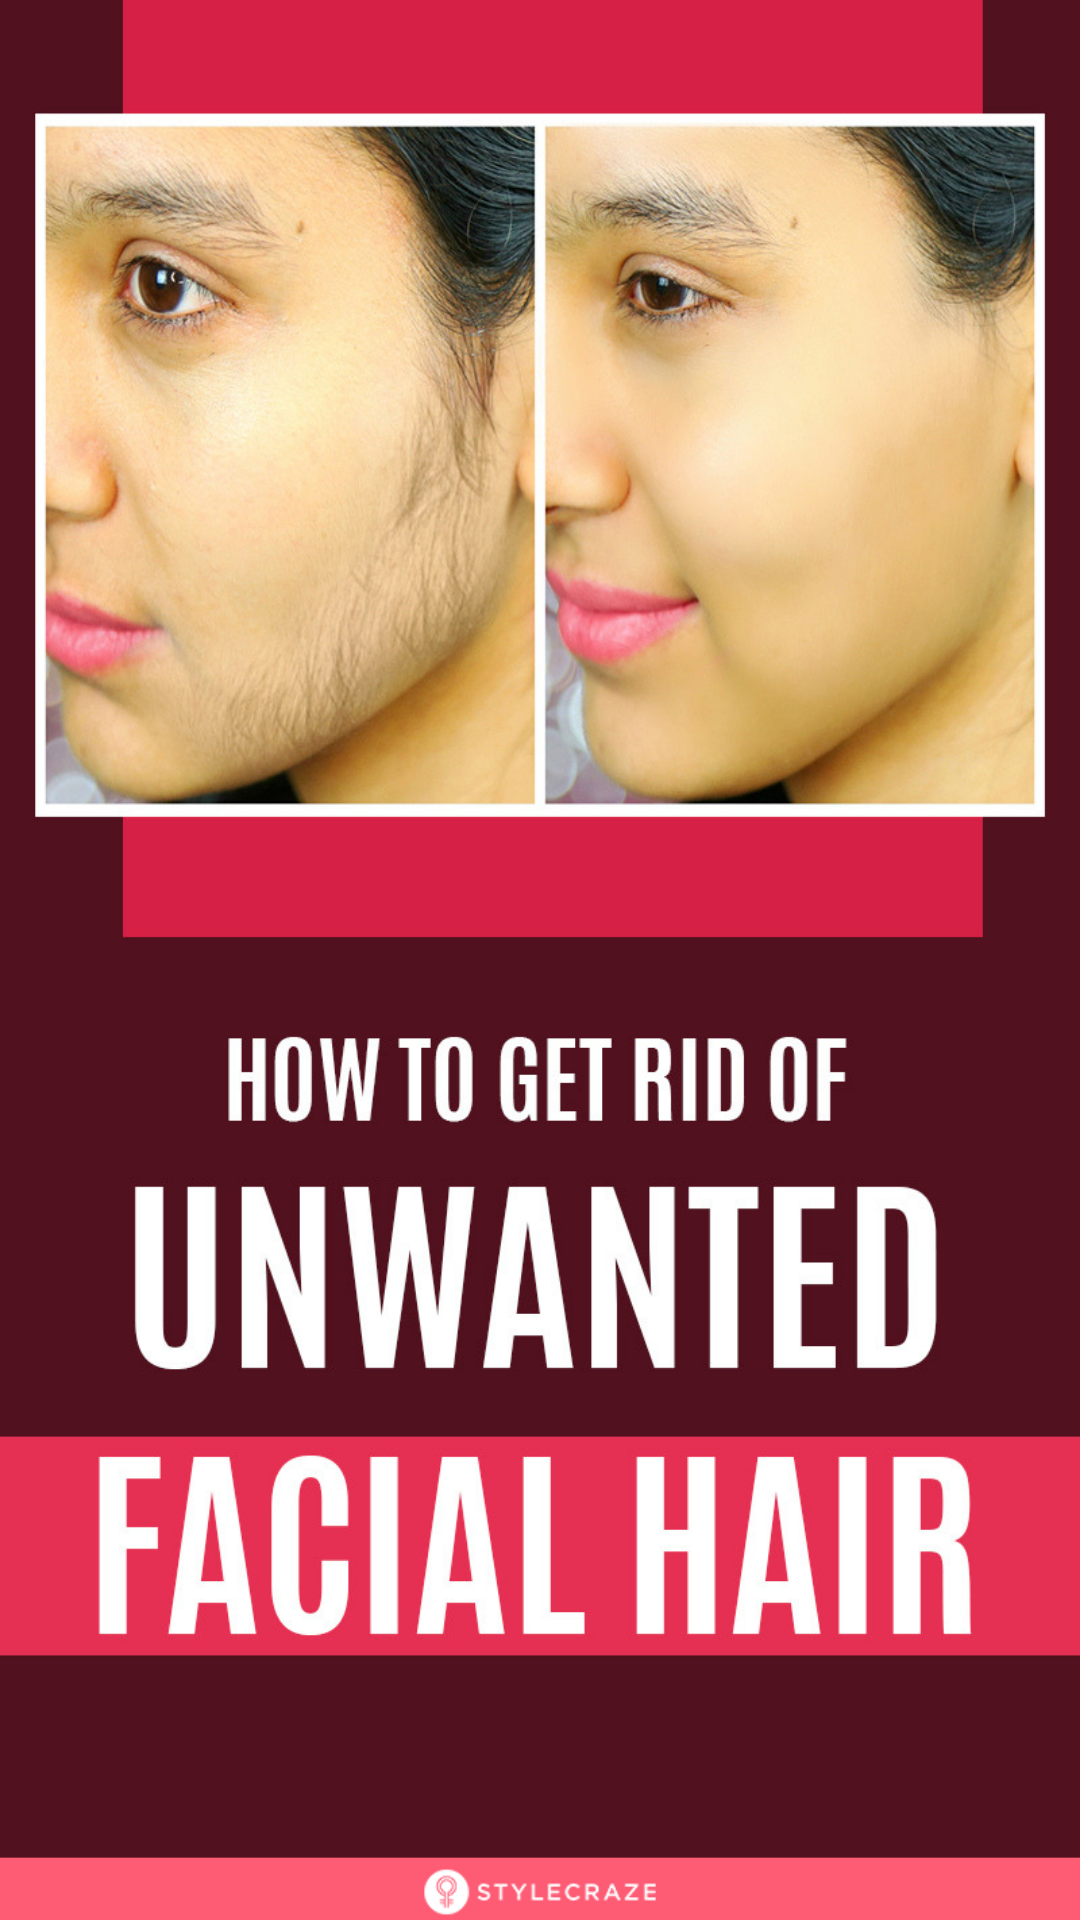 home remedies and tips for unwanted facial hair | my fav